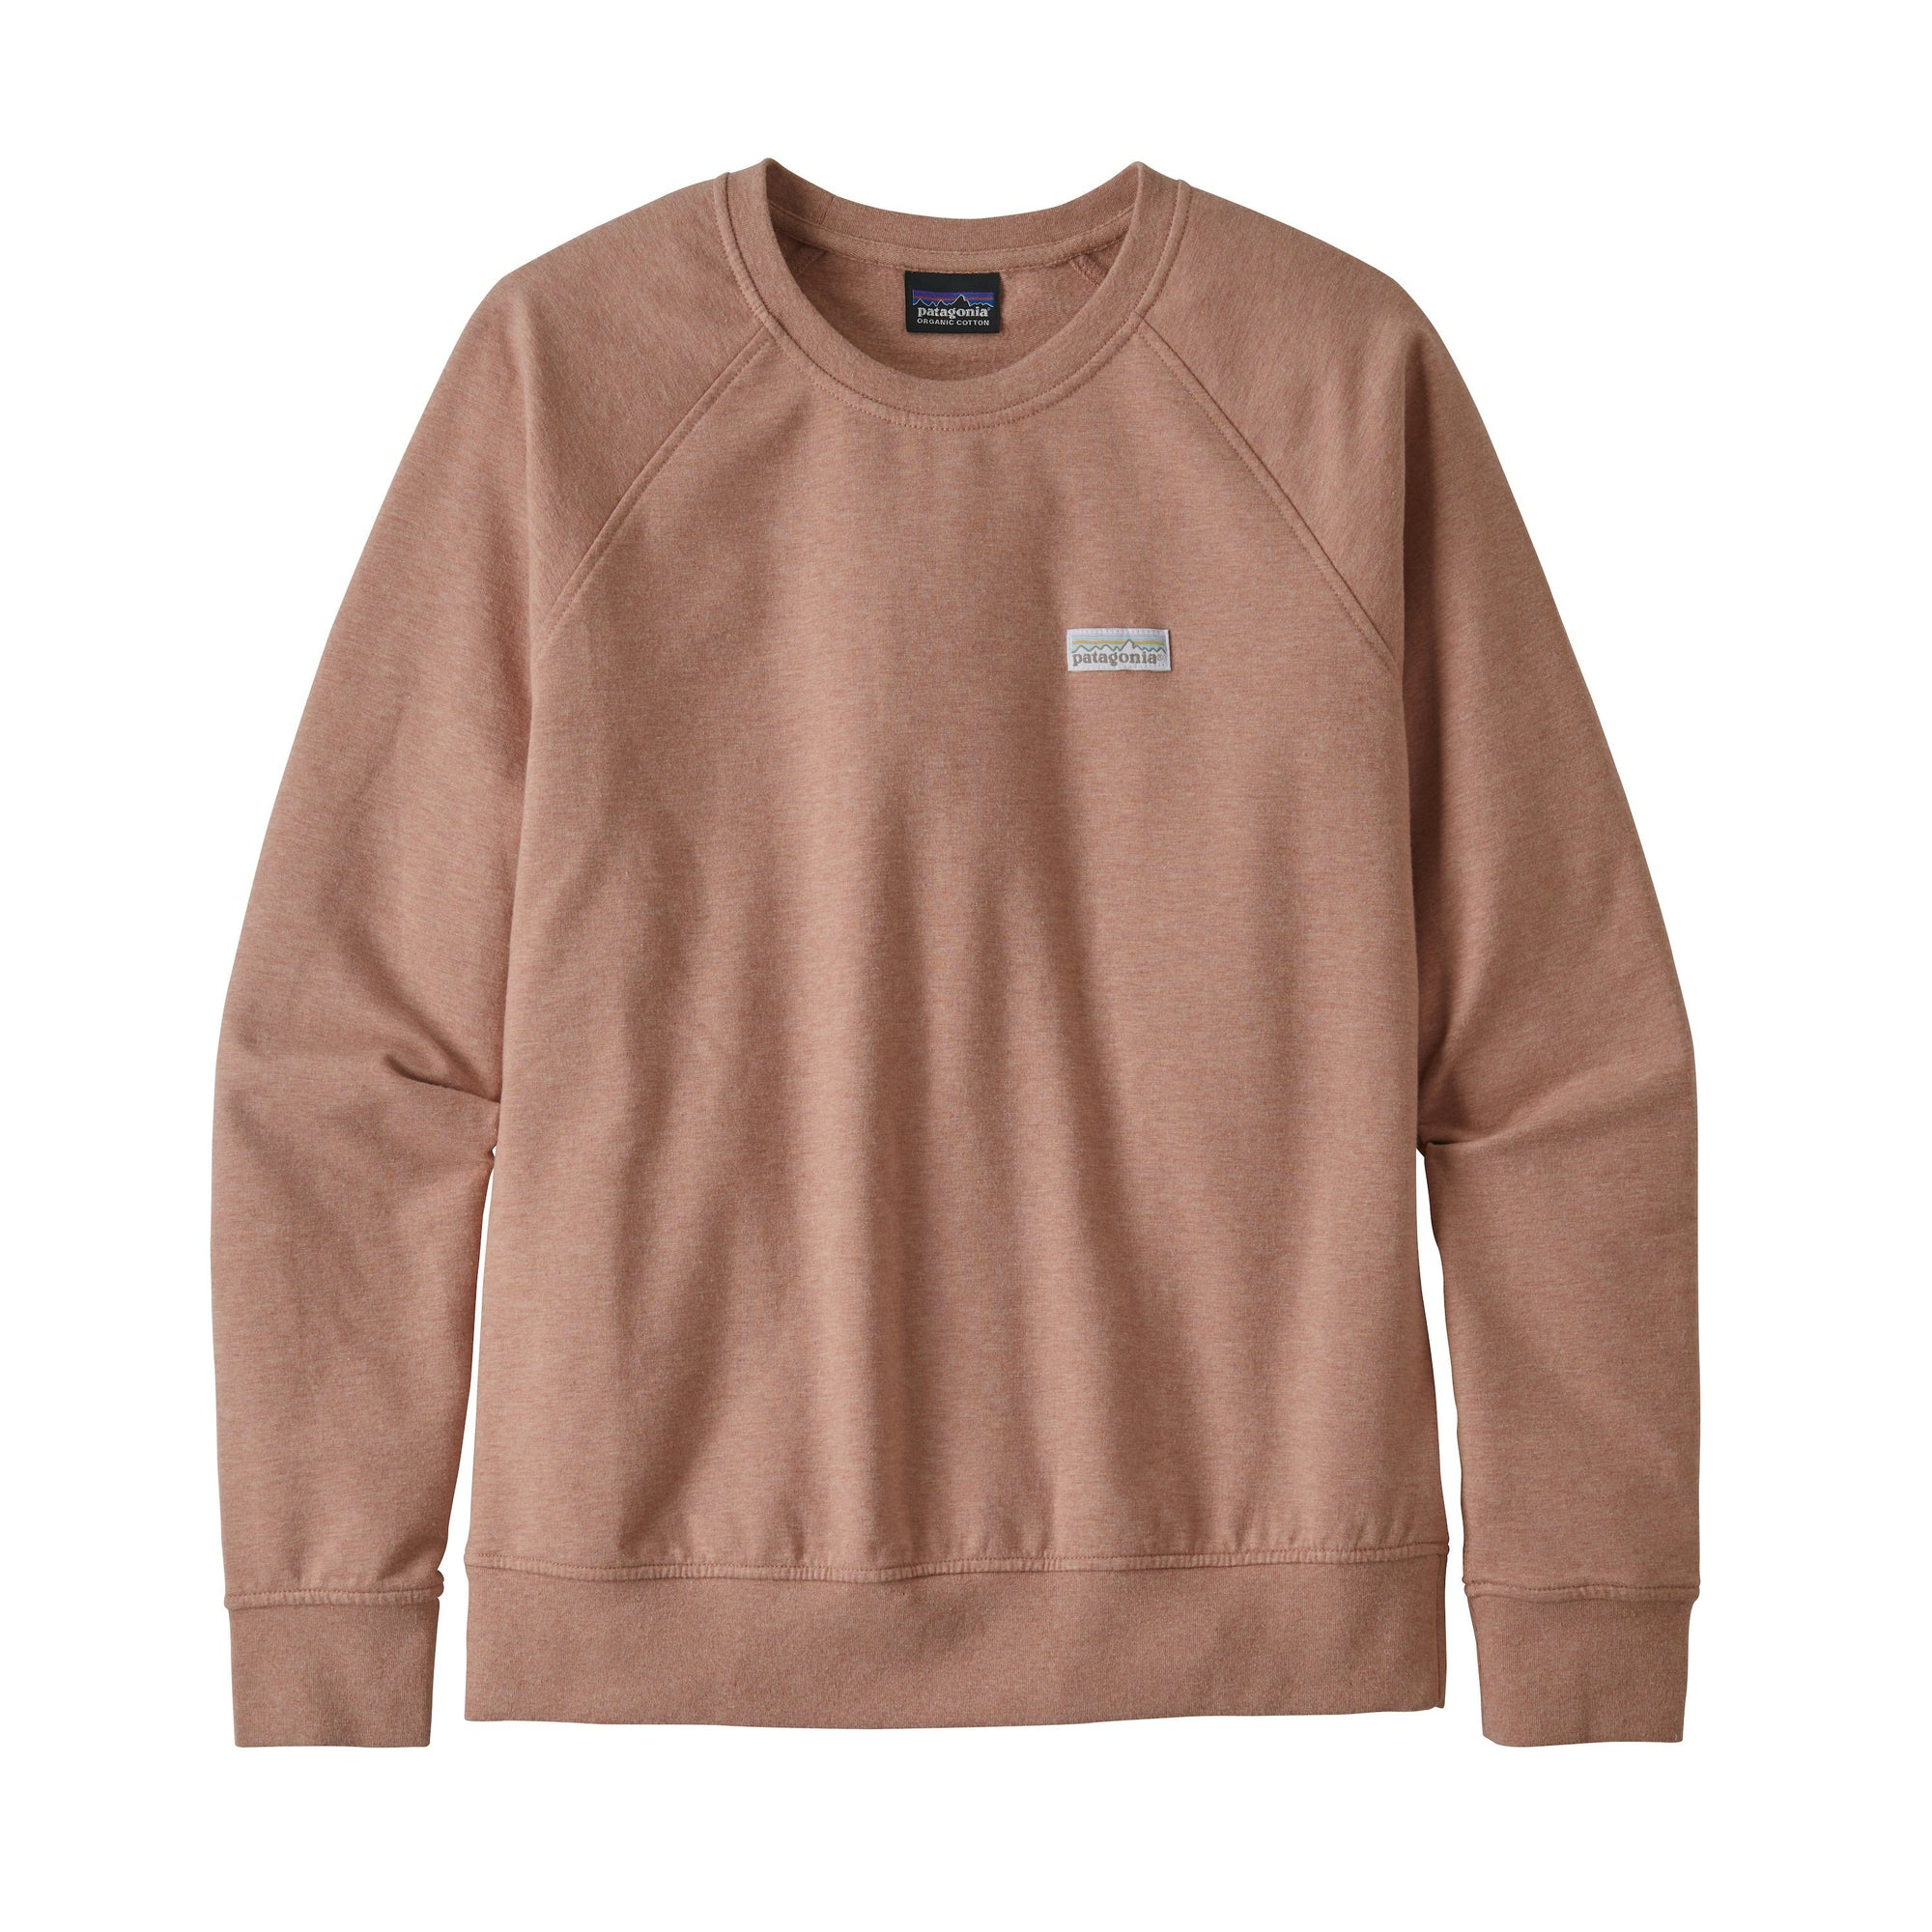 Patagonia - W's Pastel P-6 Label Ahnya Crew Sweatshirt - Organic Cotton - Weekendbee - sustainable sportswear